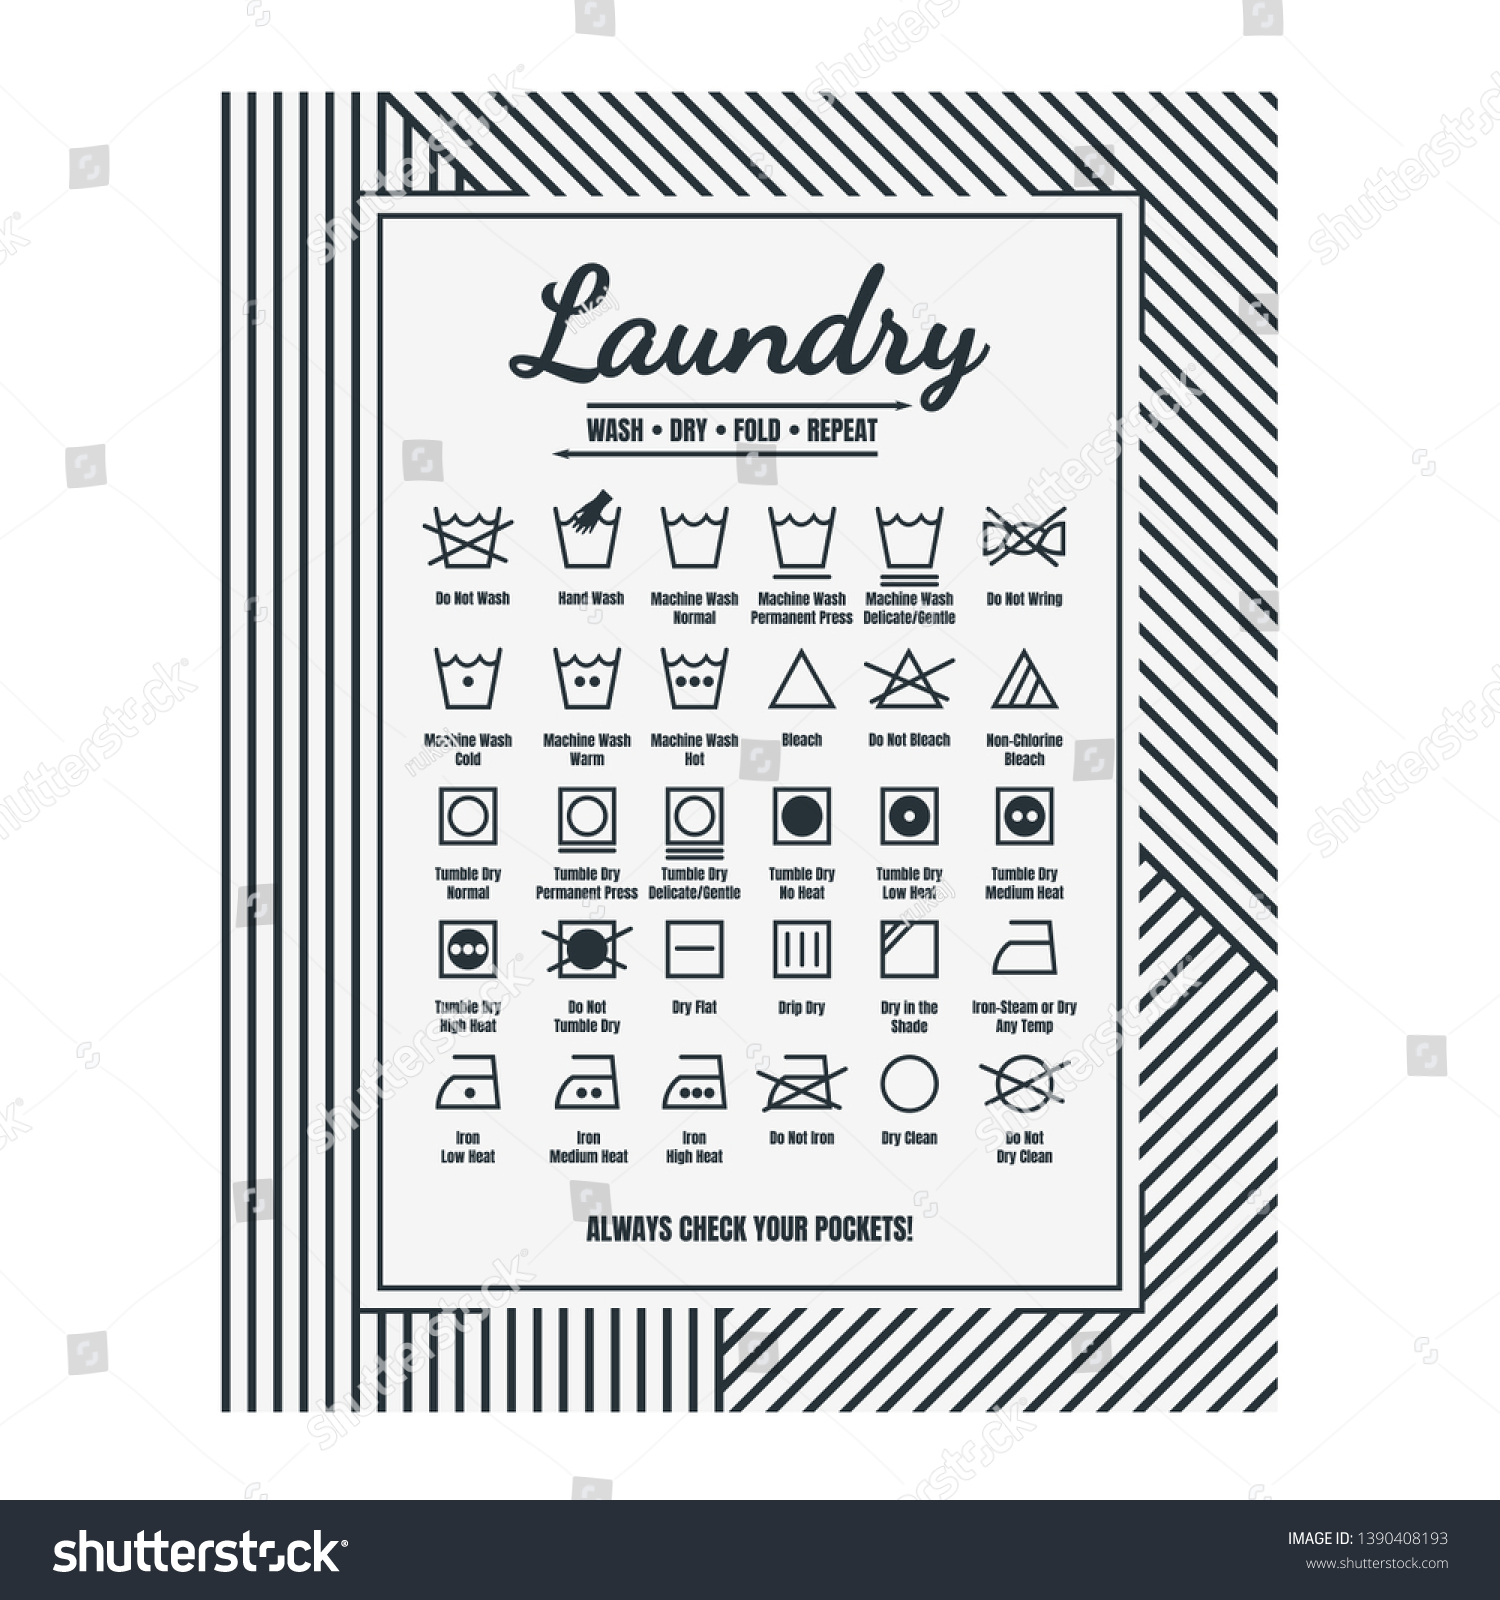 Laundry Room Decor Laundry Care Symbols Royalty Free Stock